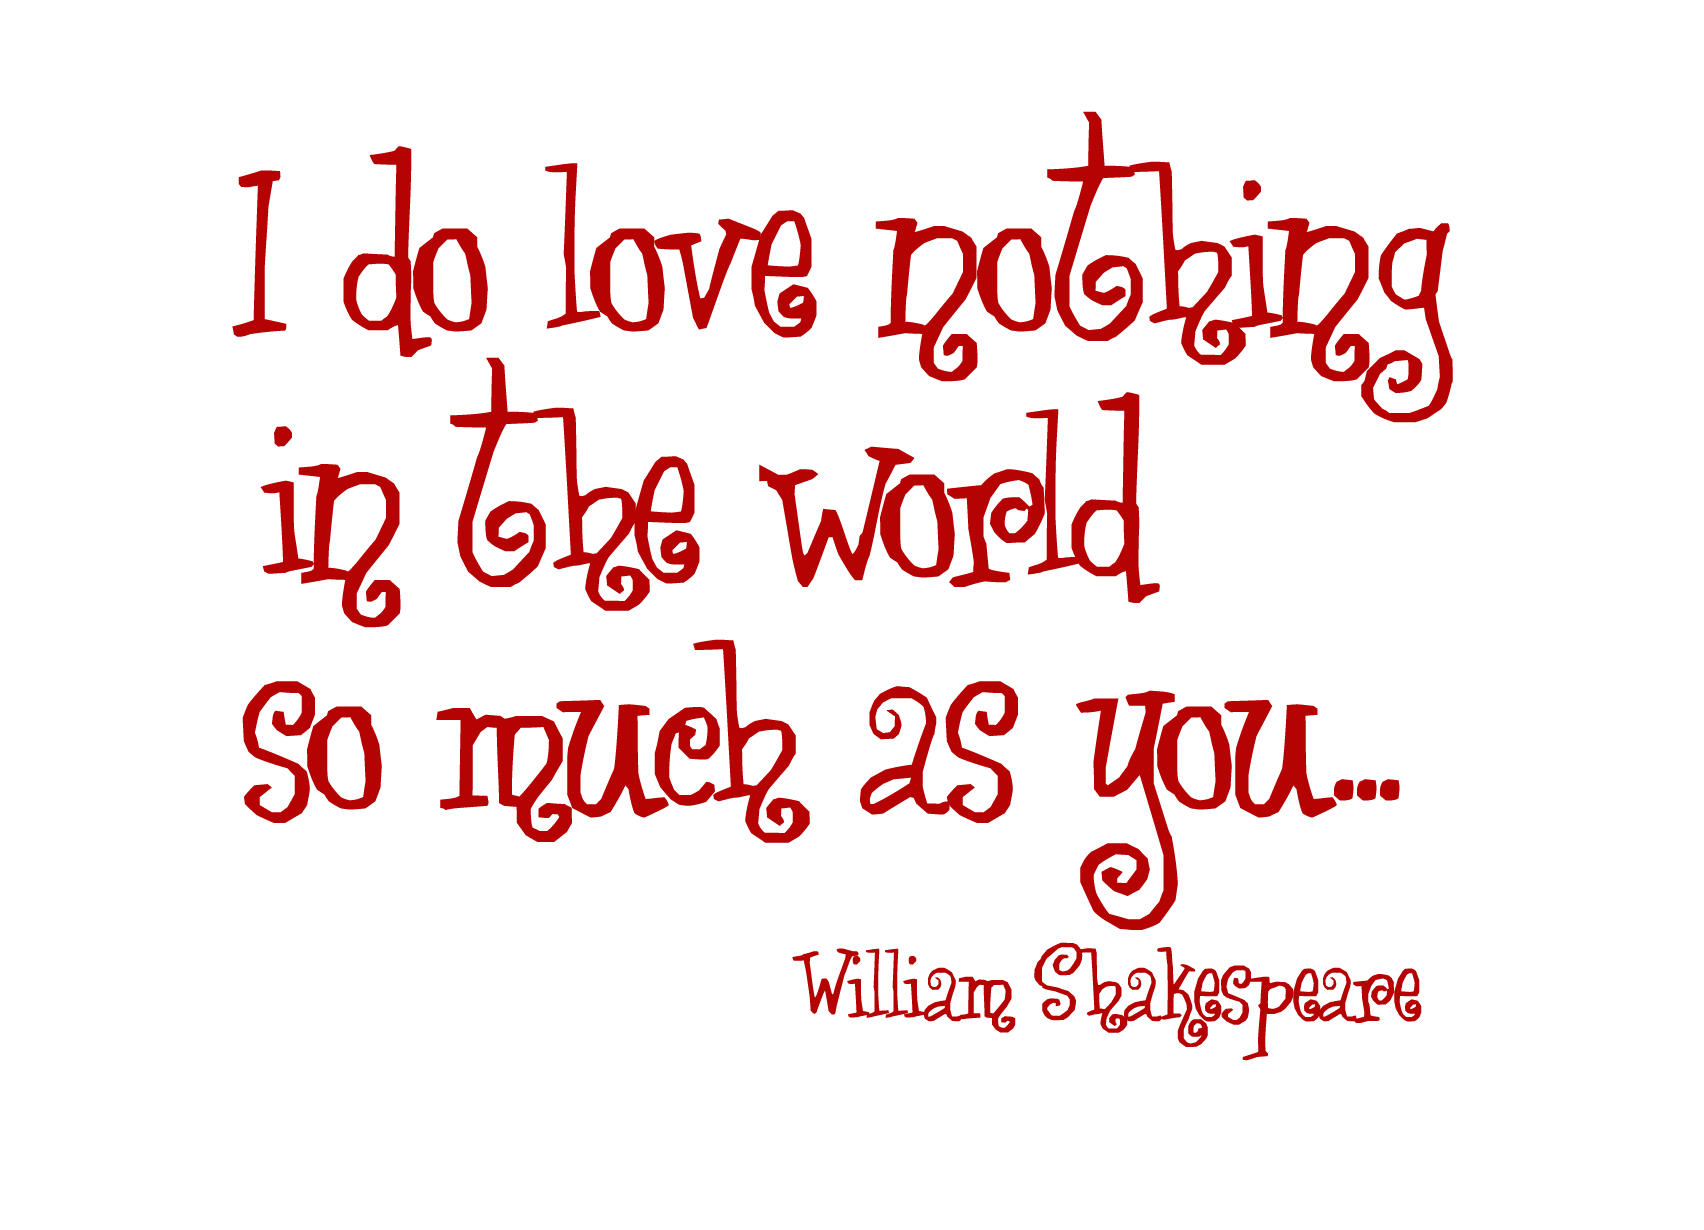 Love Quotes By Shakespeare 20 High Resolution Wallpaper - Hdlovewall.com